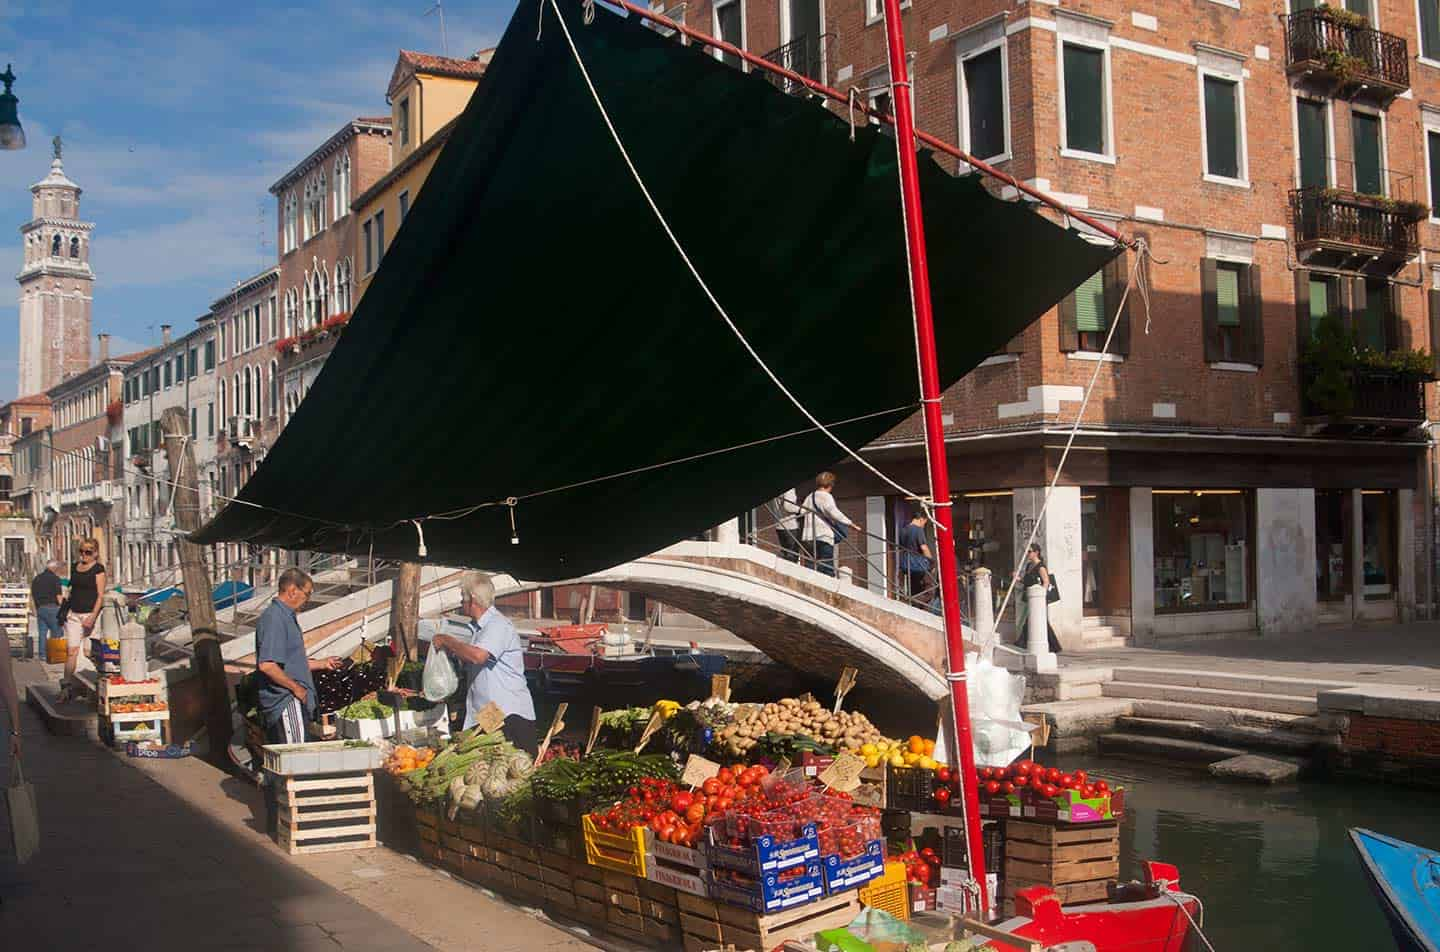 Image of a greengrocer stall on a boat in Venice